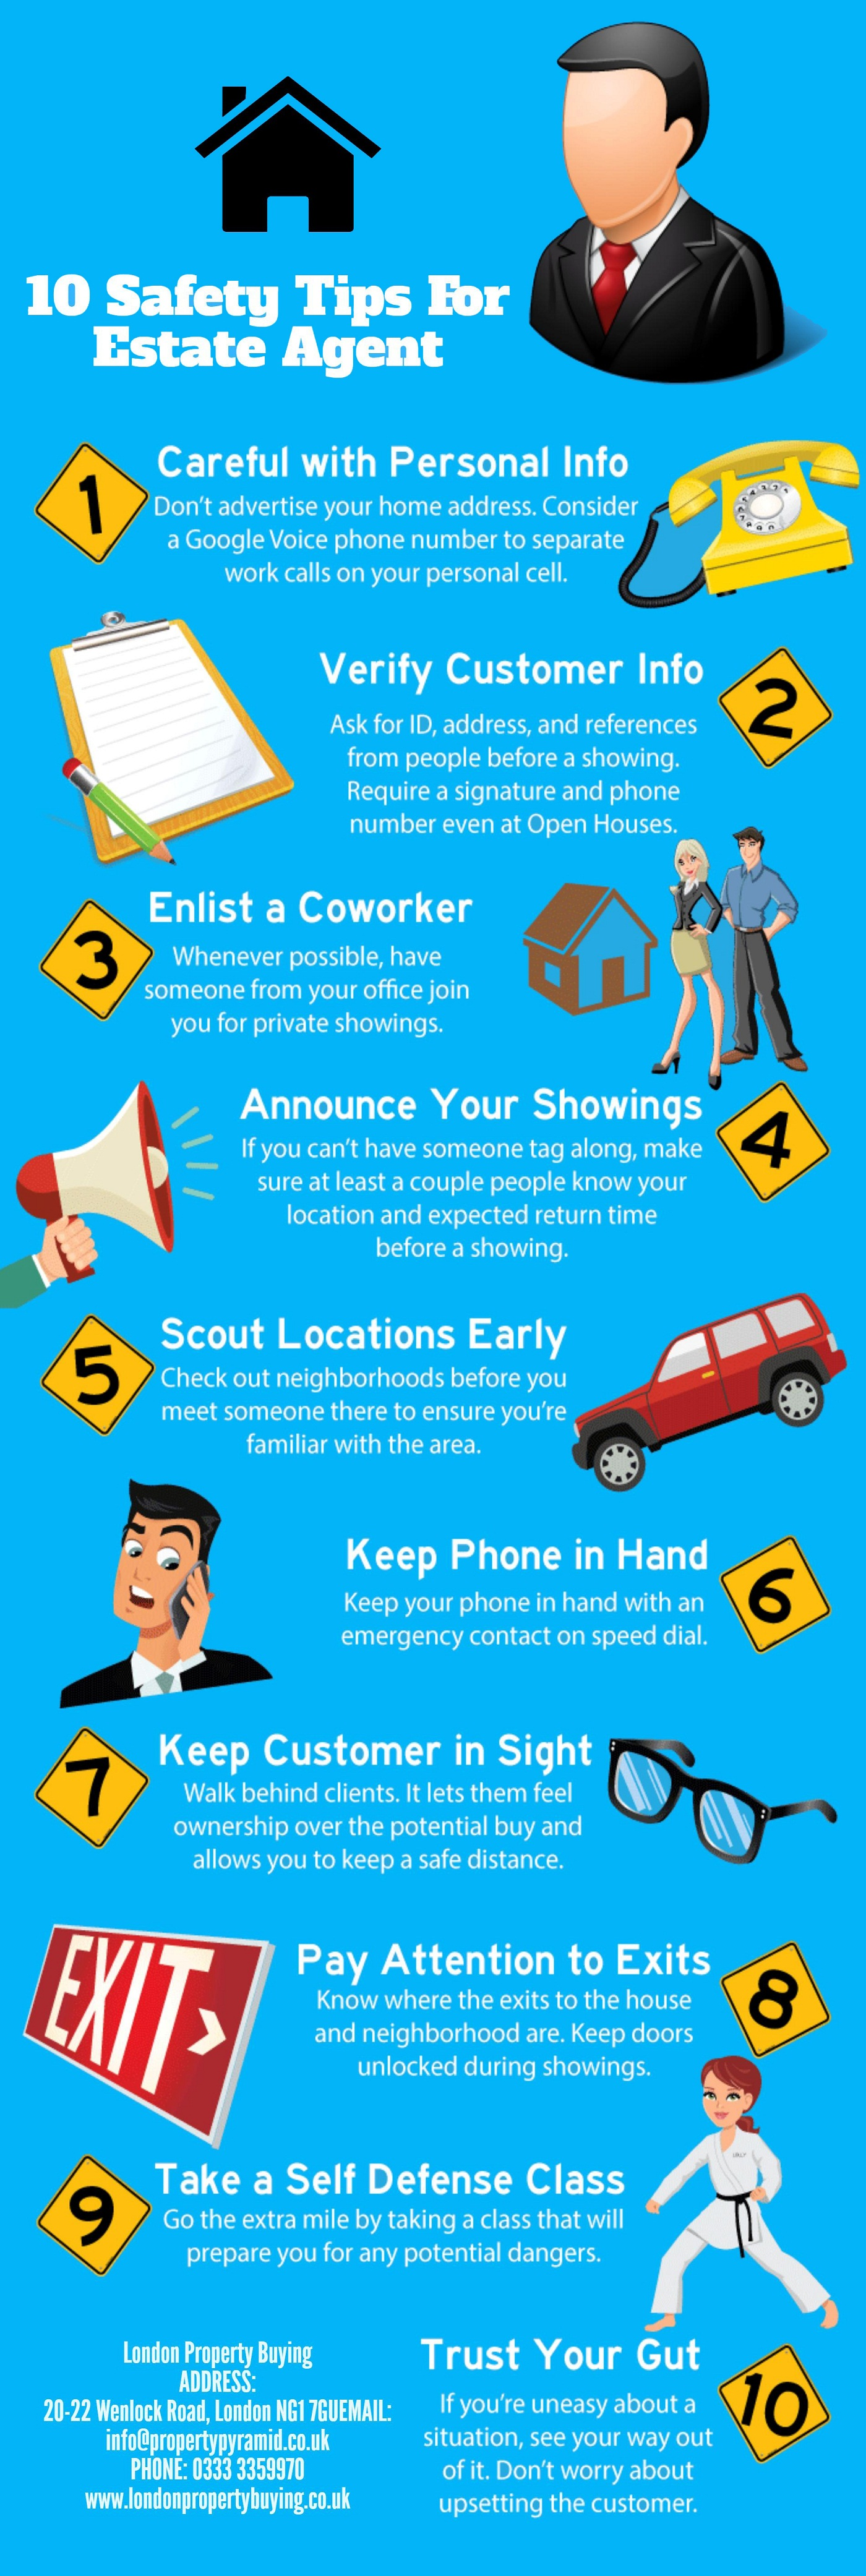 10 Safety Tips For Estate Agent